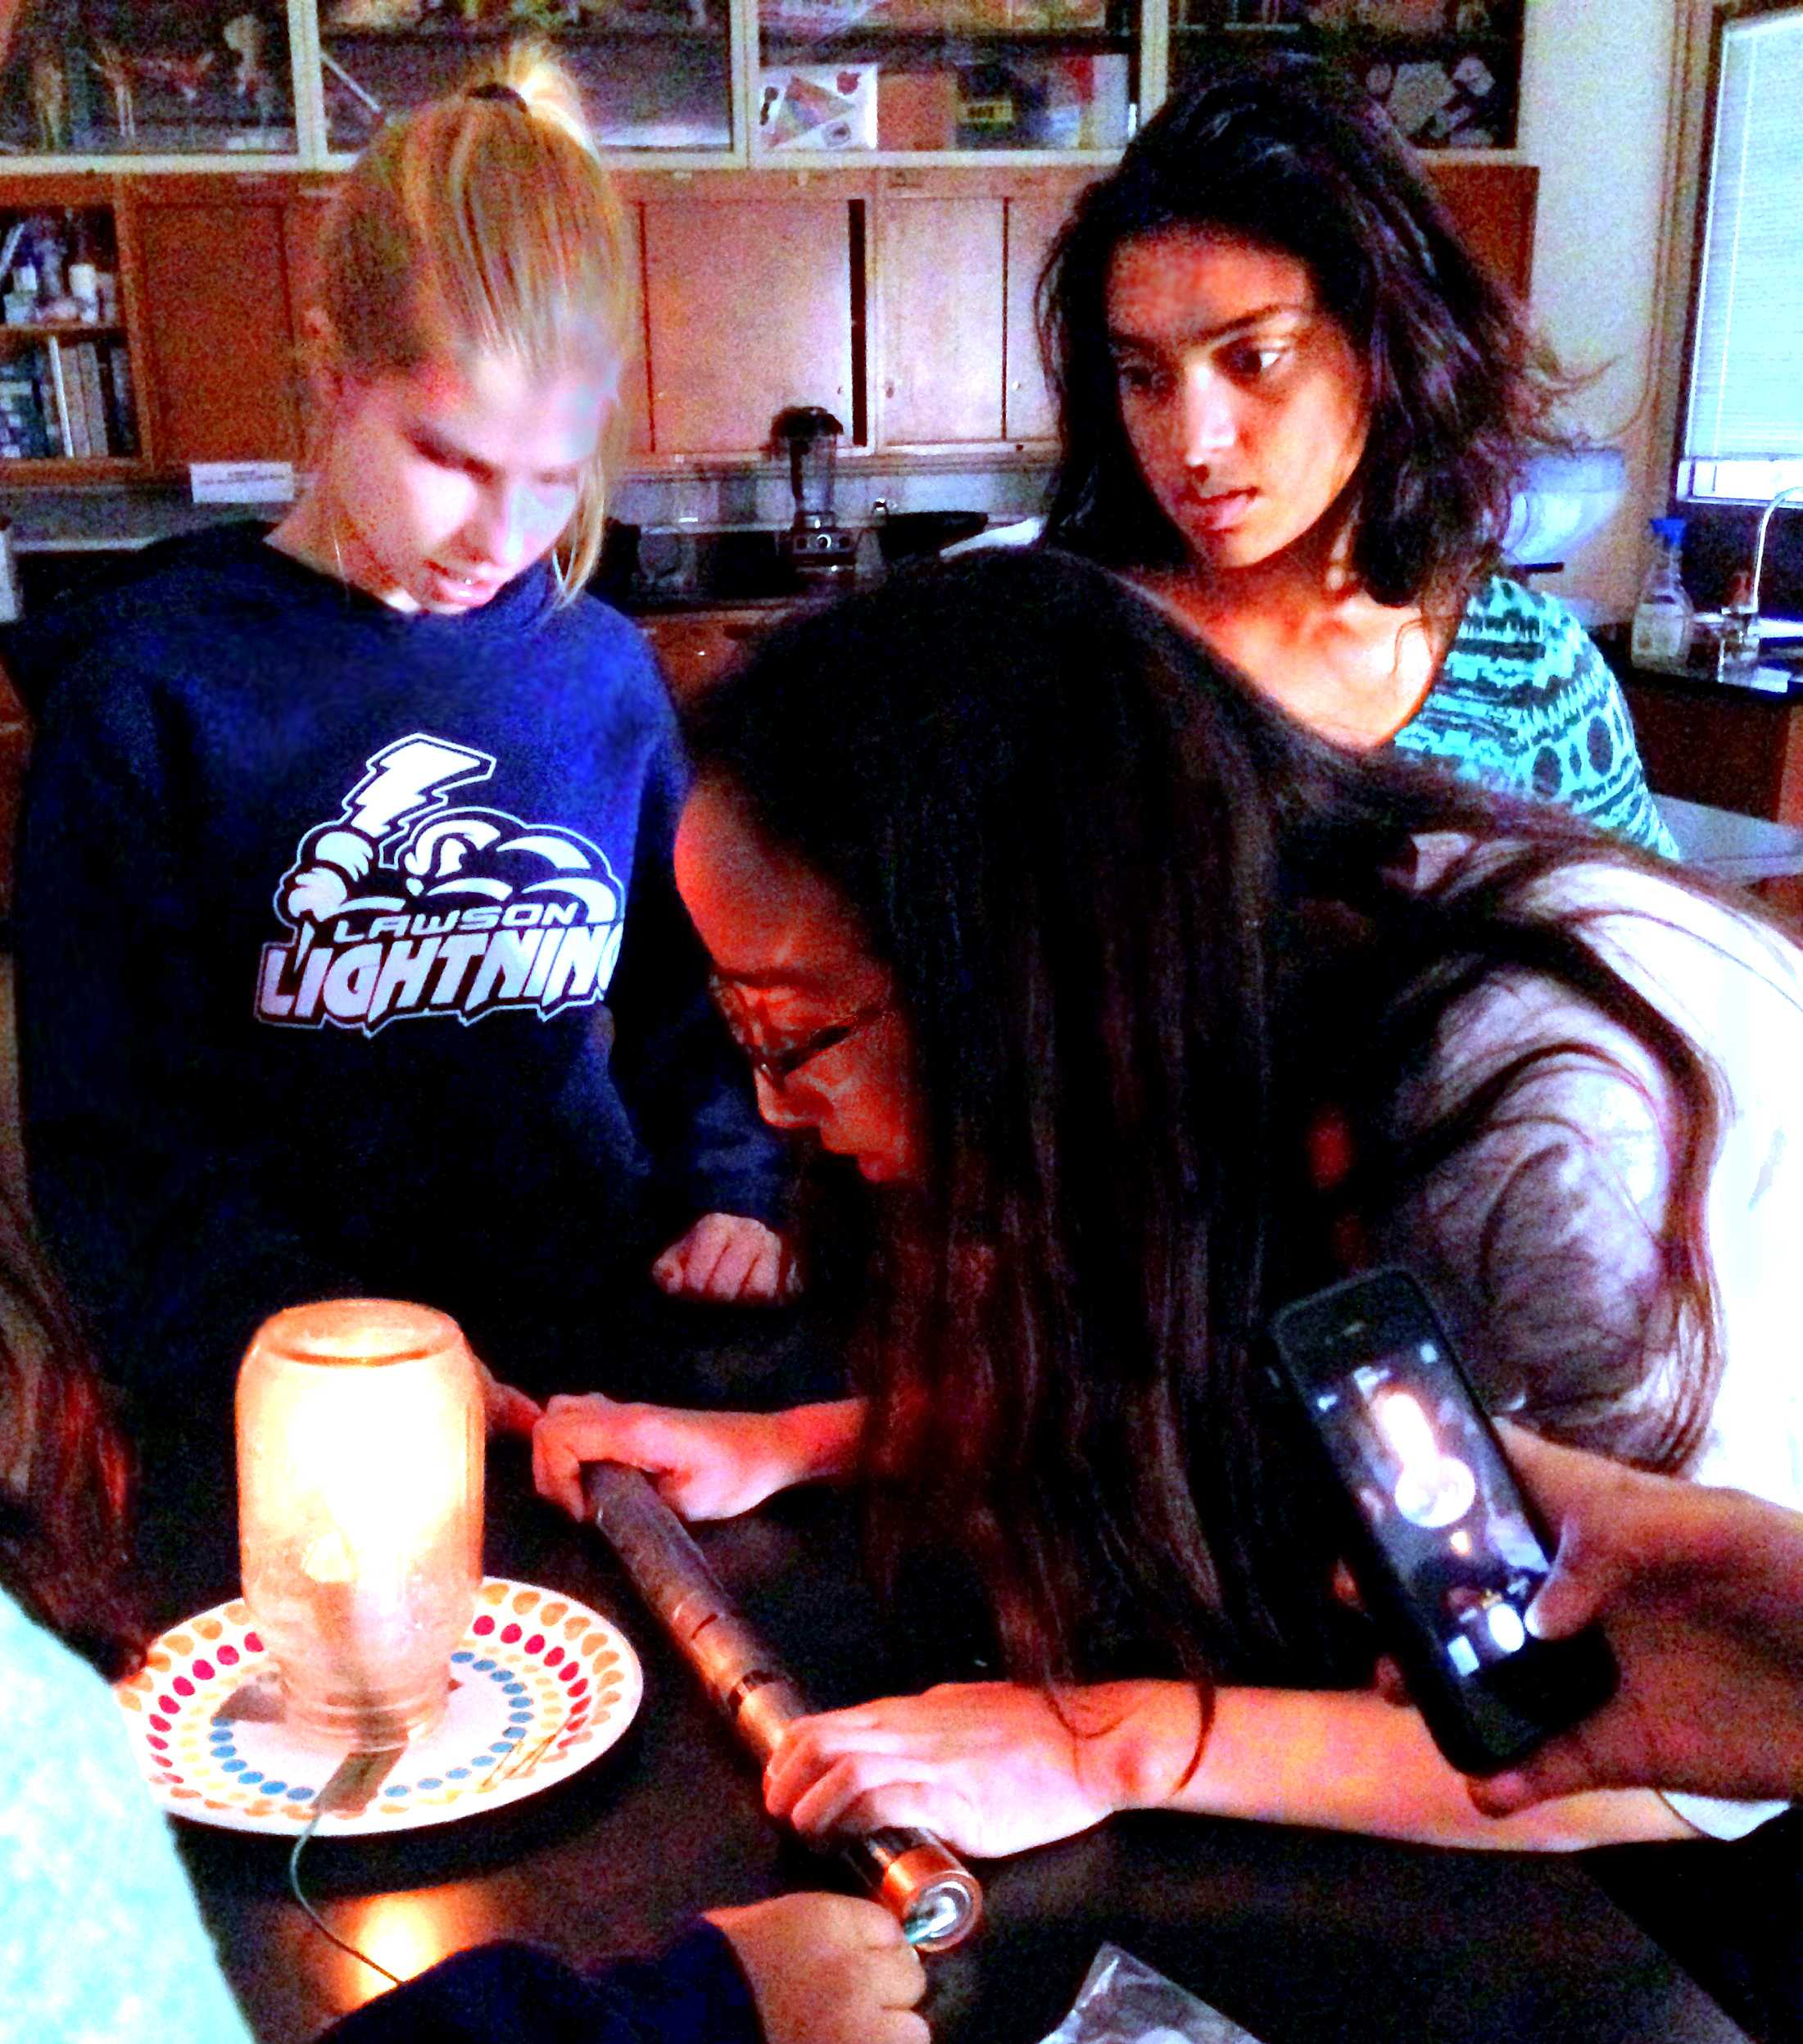 WiSTEM Internal Vice President senior Emma Lewis helps demonstrate the light bulb experiment for freshmen Johanna Karras and Kalpana Gopalakrishnan. The experiment, conducted at the club's meeting on Nov. 13, involved creating a make-shift lightbulb using batteries, wires and pencil lead. Photo by Varsha Venkat.